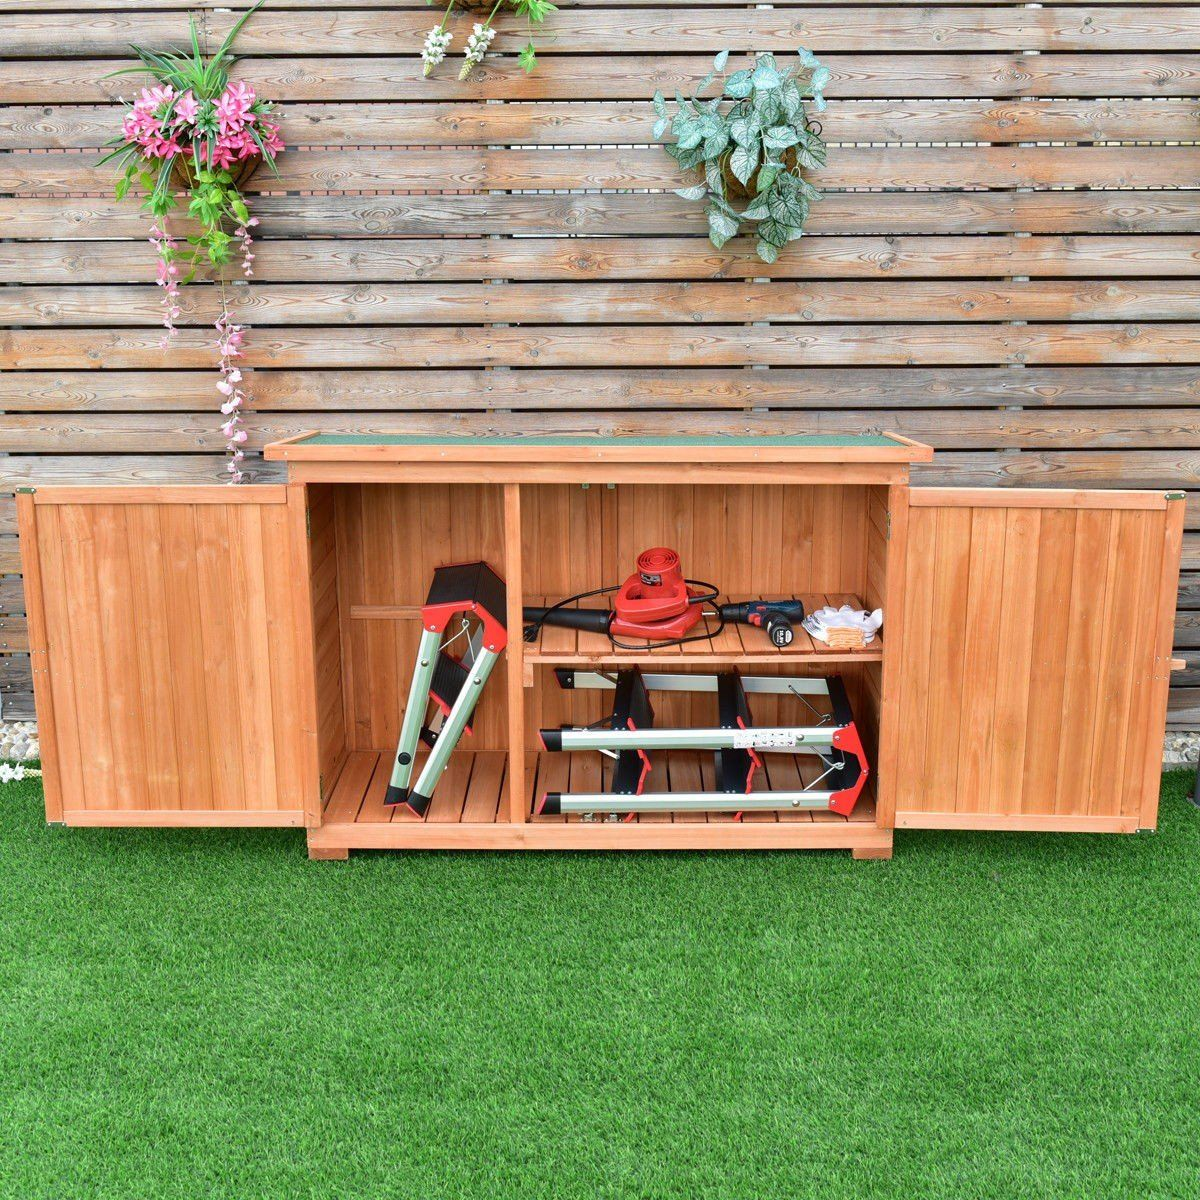 Goplus Outdoor Wooden Storage Shed Lockers Cabinet For Garden Yard With Double Doors